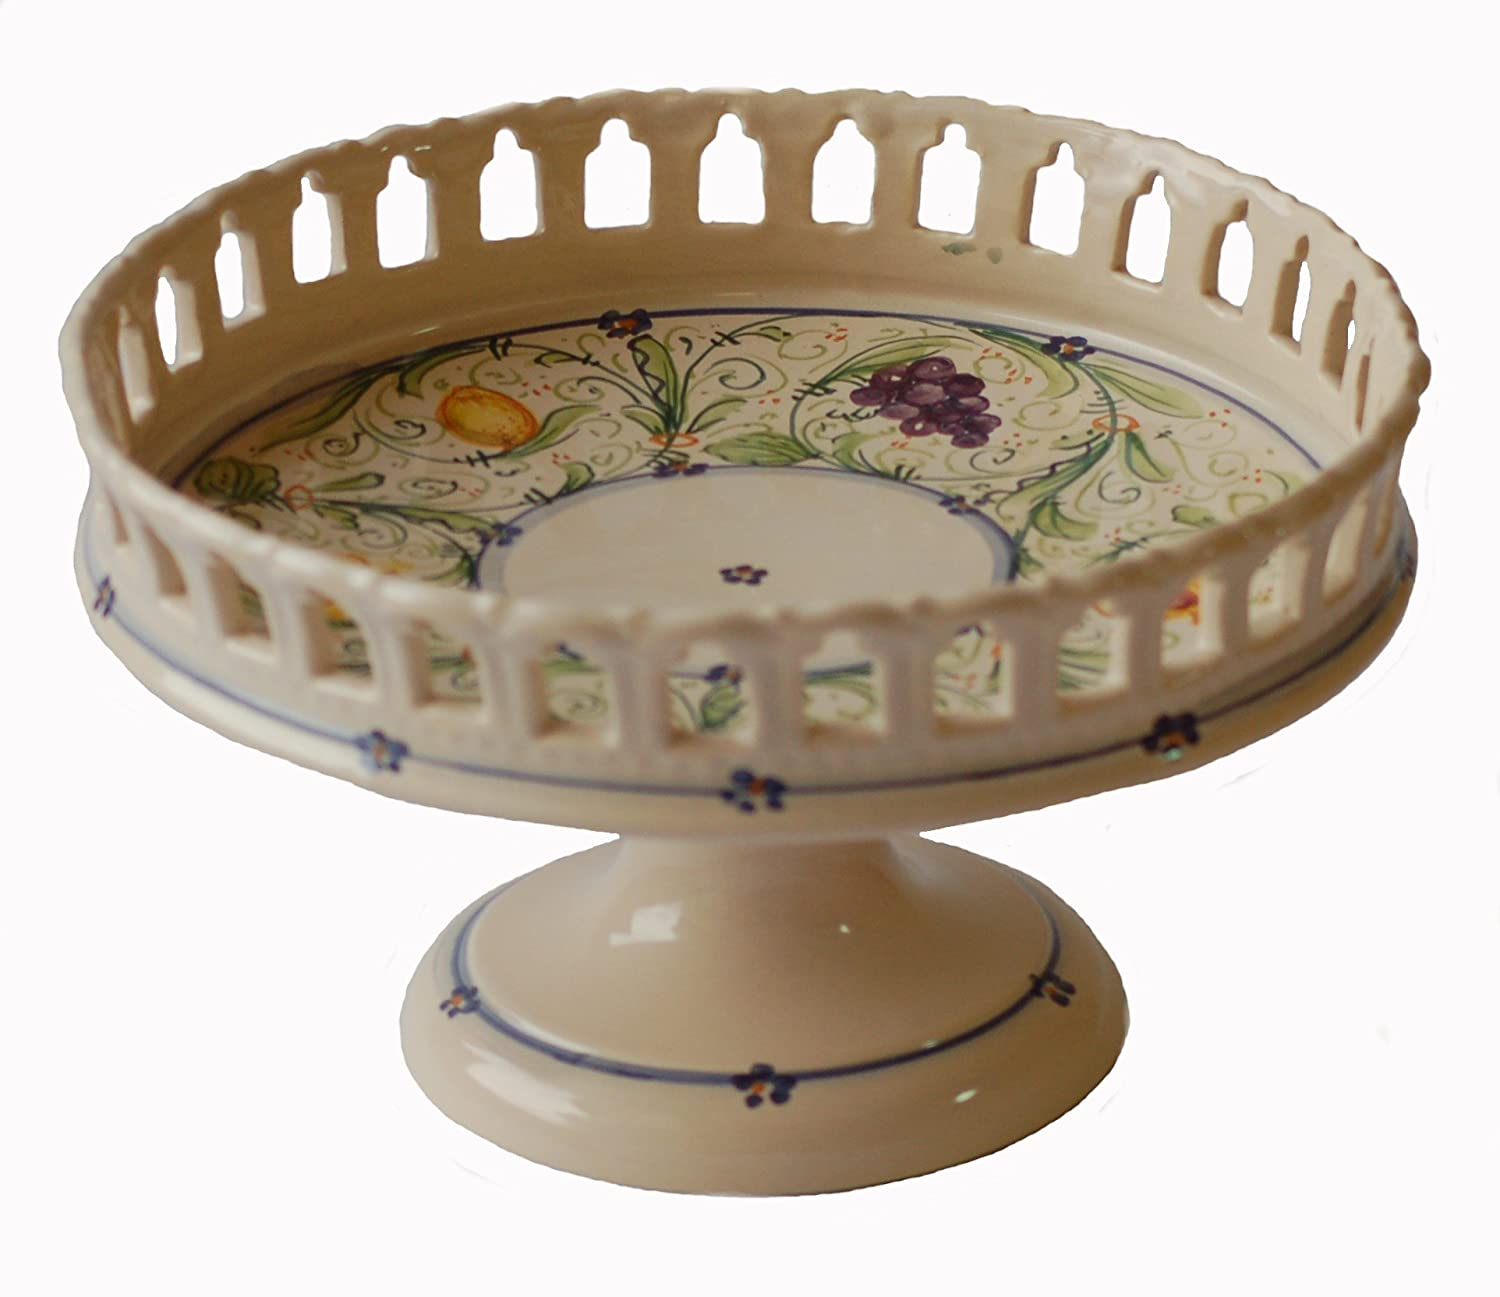 Simonetti Hand Painted Italian Ceramic Centerpiece/Fruit Bowl with Pedestal Made in Italy